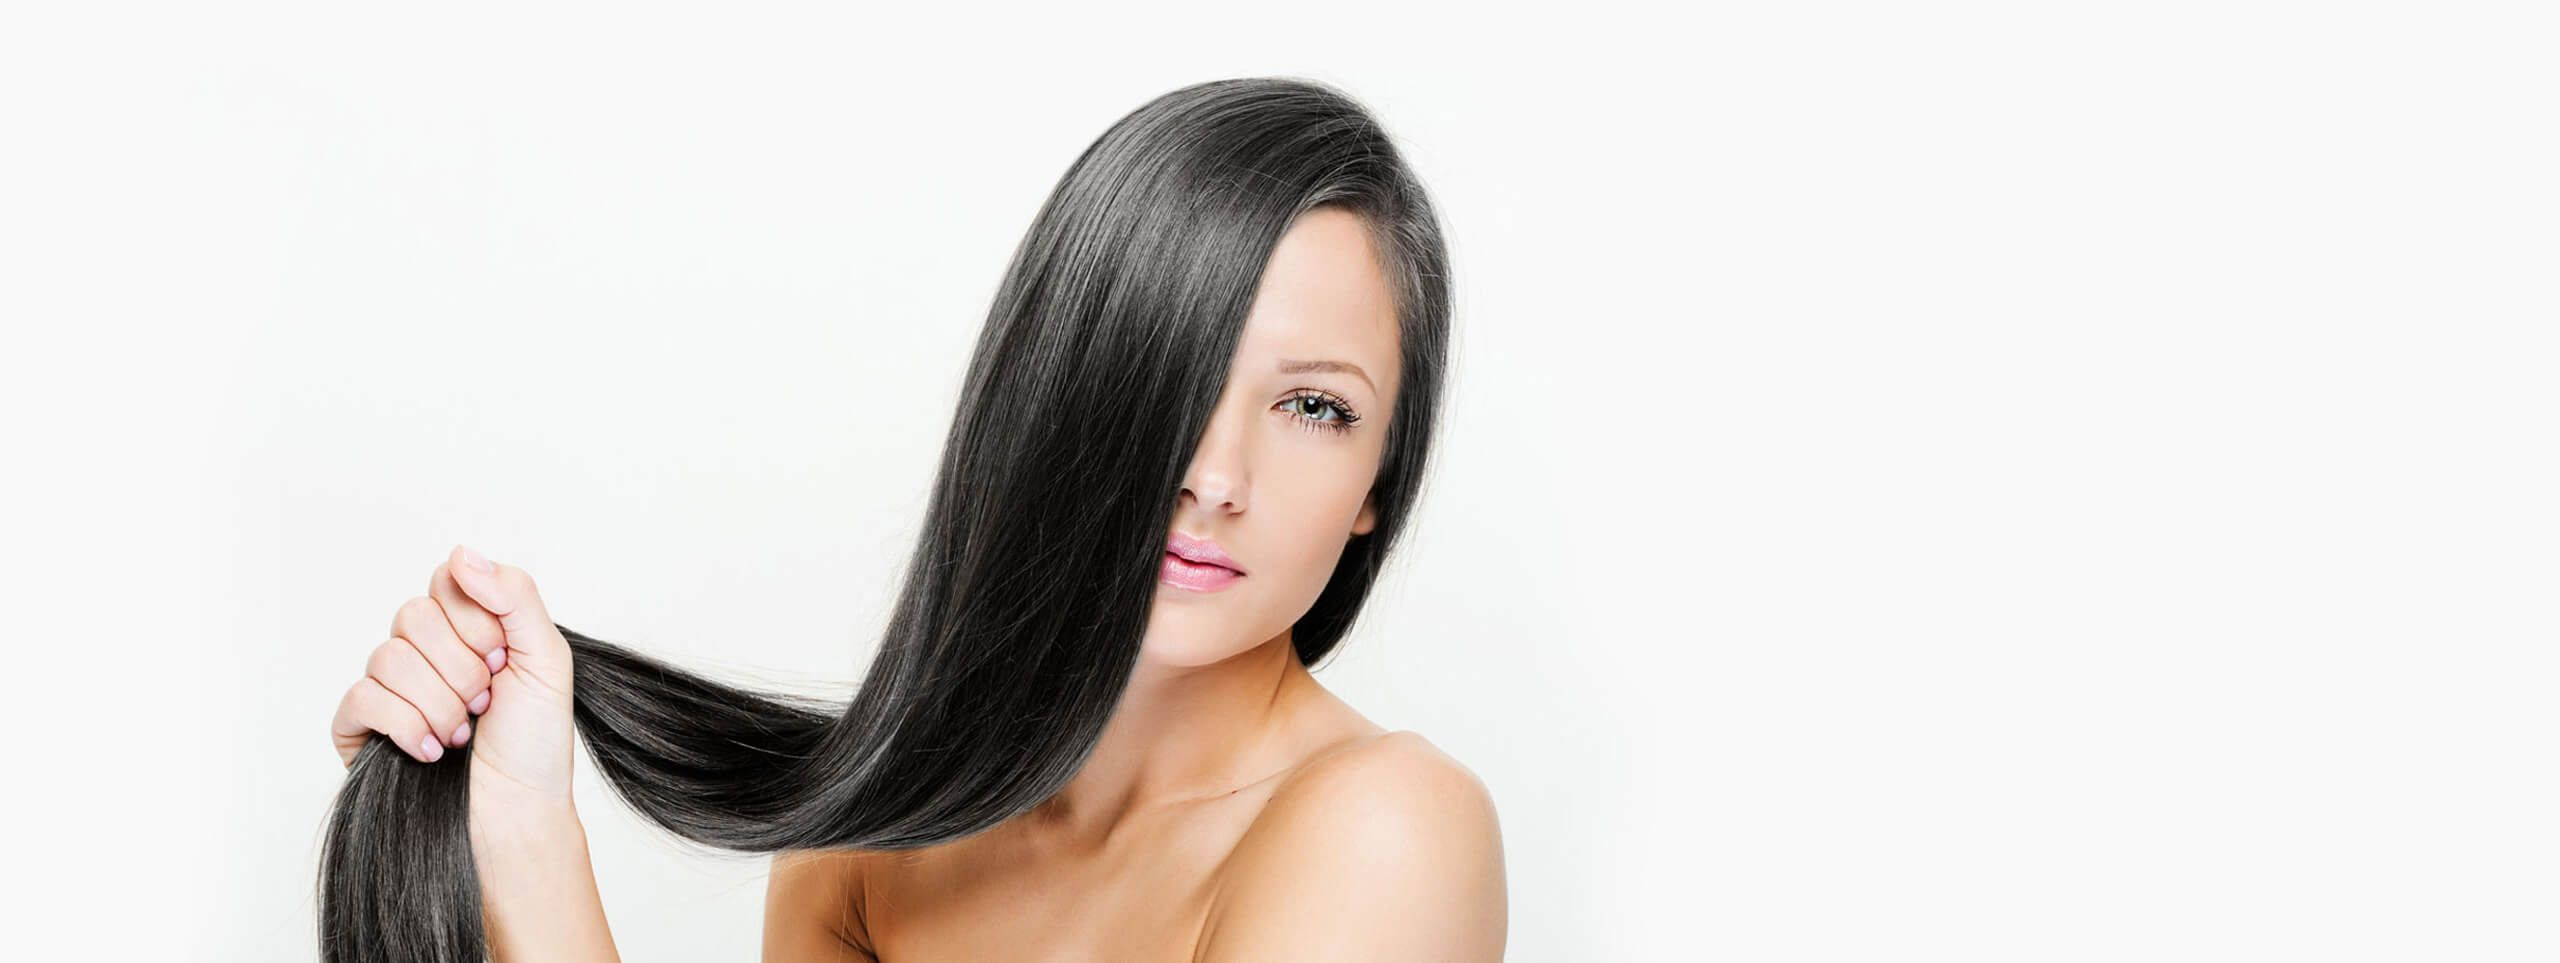 Model with long dark thin hair